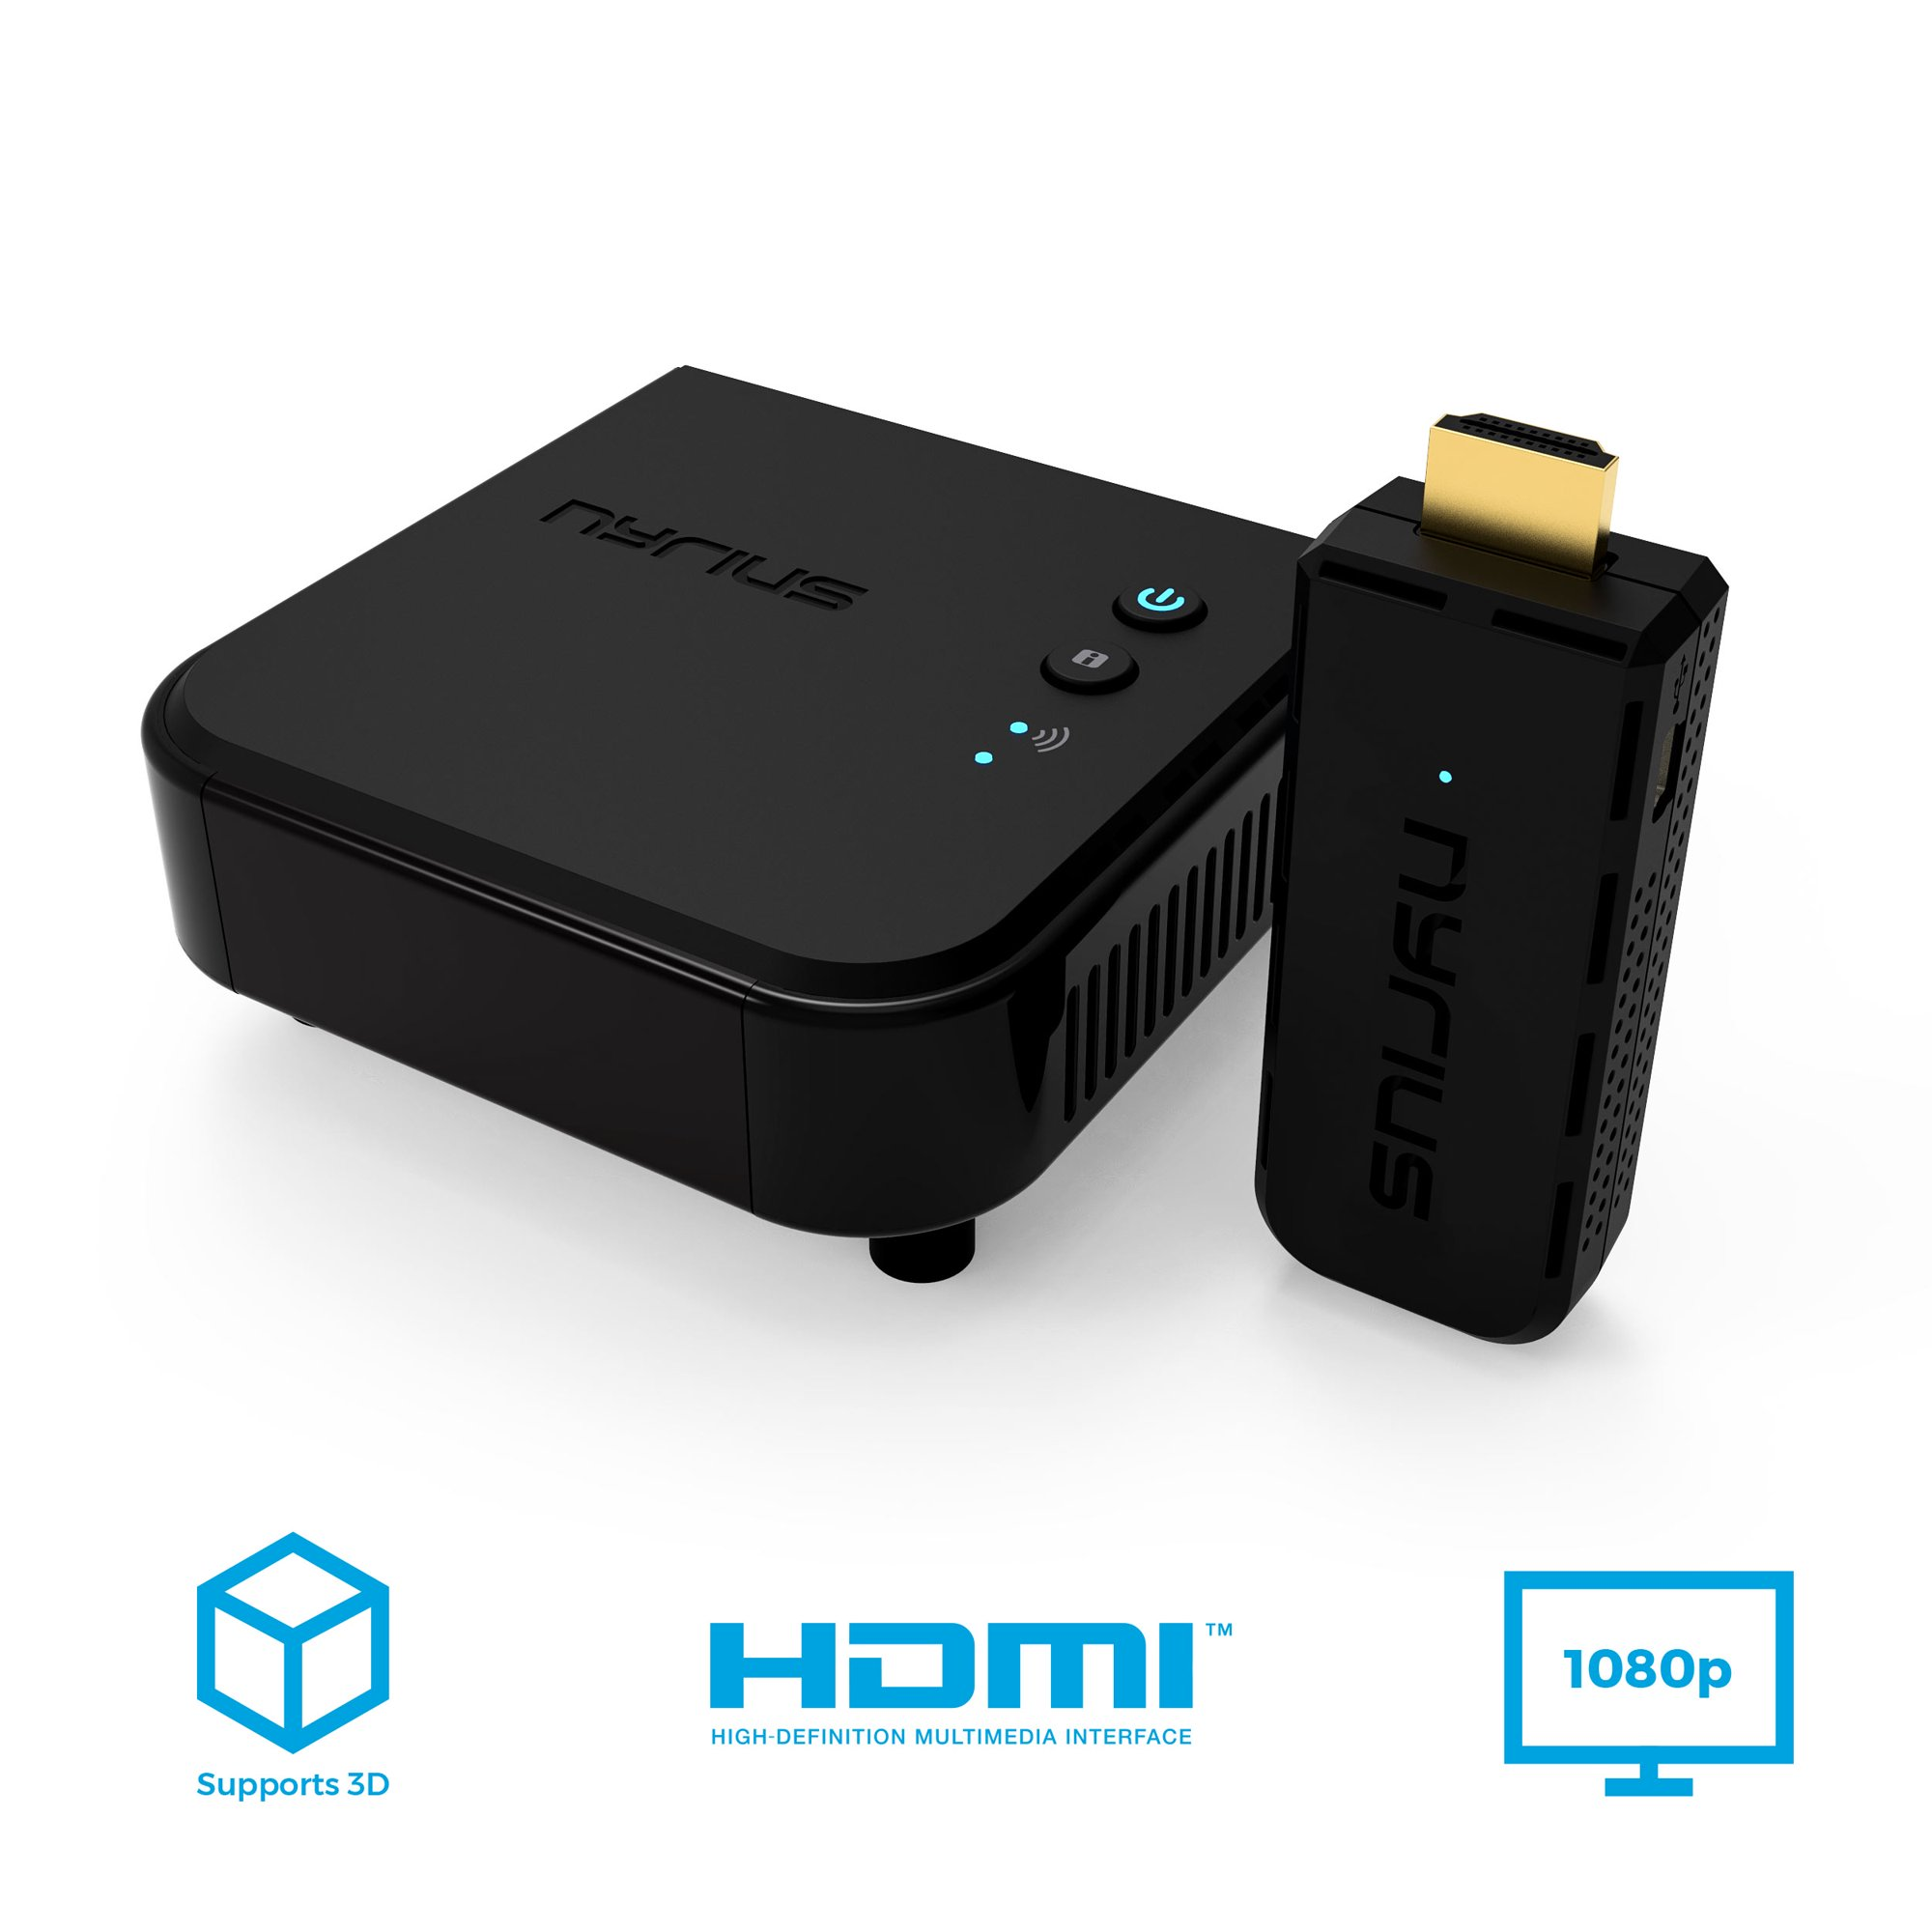 Nyrius ARIES Pro Wireless HDMI Transmitter and Receiver To Stream HD 1080p  3D Video From Laptop, PC, Cable, Netflix, YouTube, PS4, Xbox 1, Drones, Pro